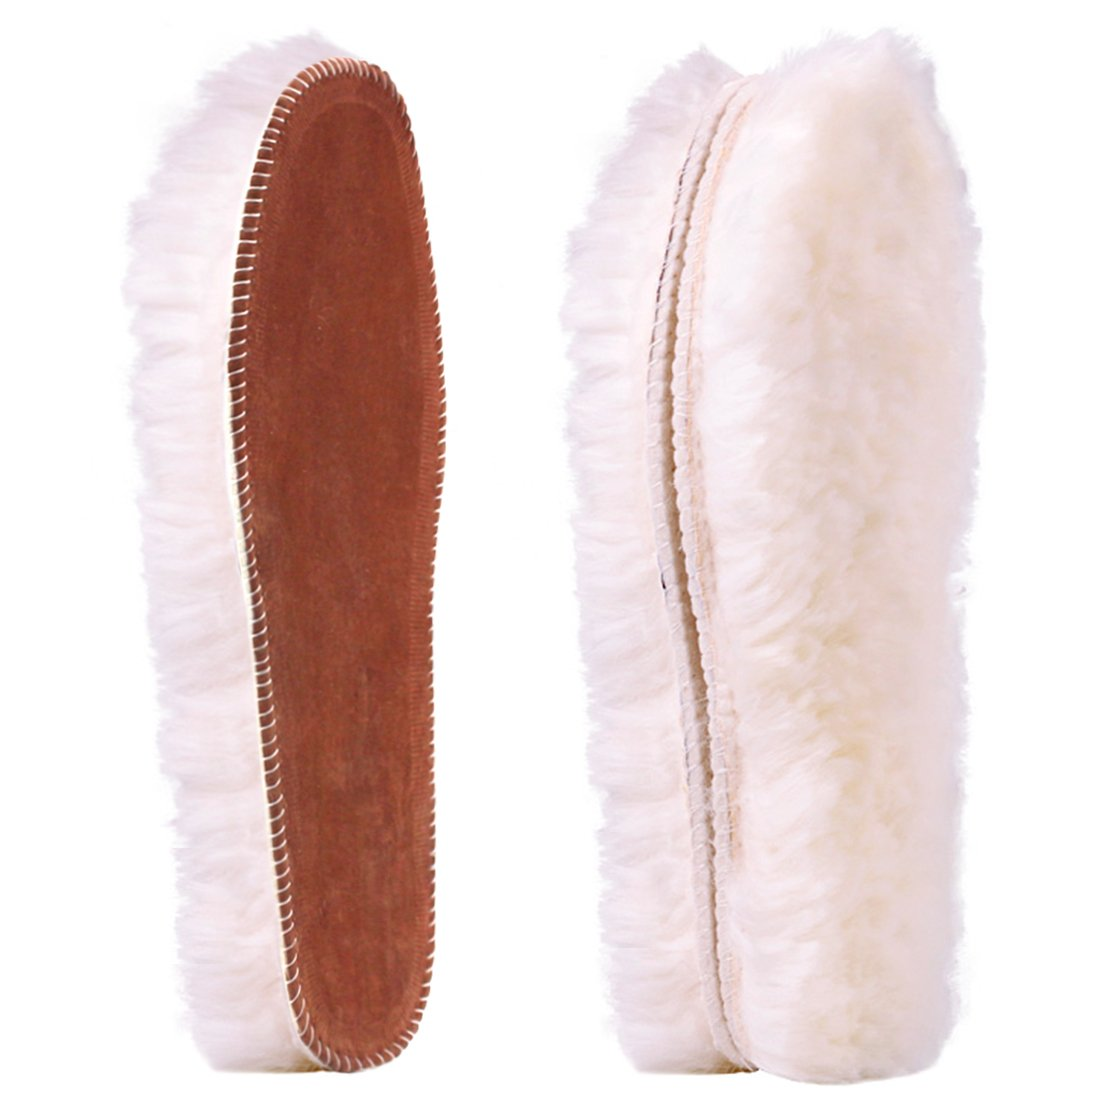 Ailaka Women's Premium Thick Sheepskin Insoles/Inserts, Warm Fluffy Fleece Wool Replacement Insoles for Shoes Boots Slippers by Ailaka